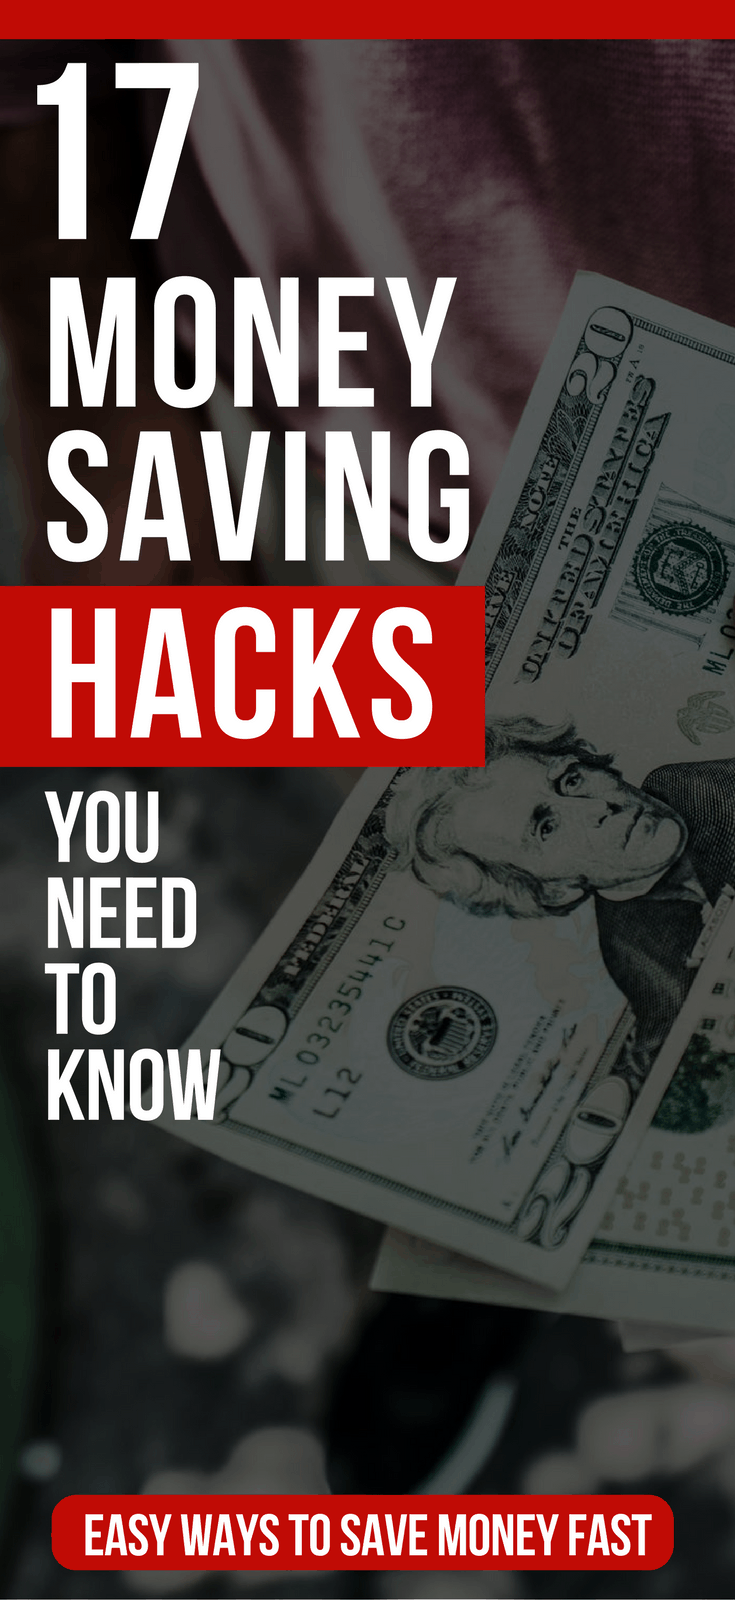 Simple money saving hacks you need to know. Discover easy shortcuts to saving and making more money without much effort. money saving tips | money saving tips | frugal living ideas | frugal living hacks | save more spend less #Budget#Money#tips#savingmoney